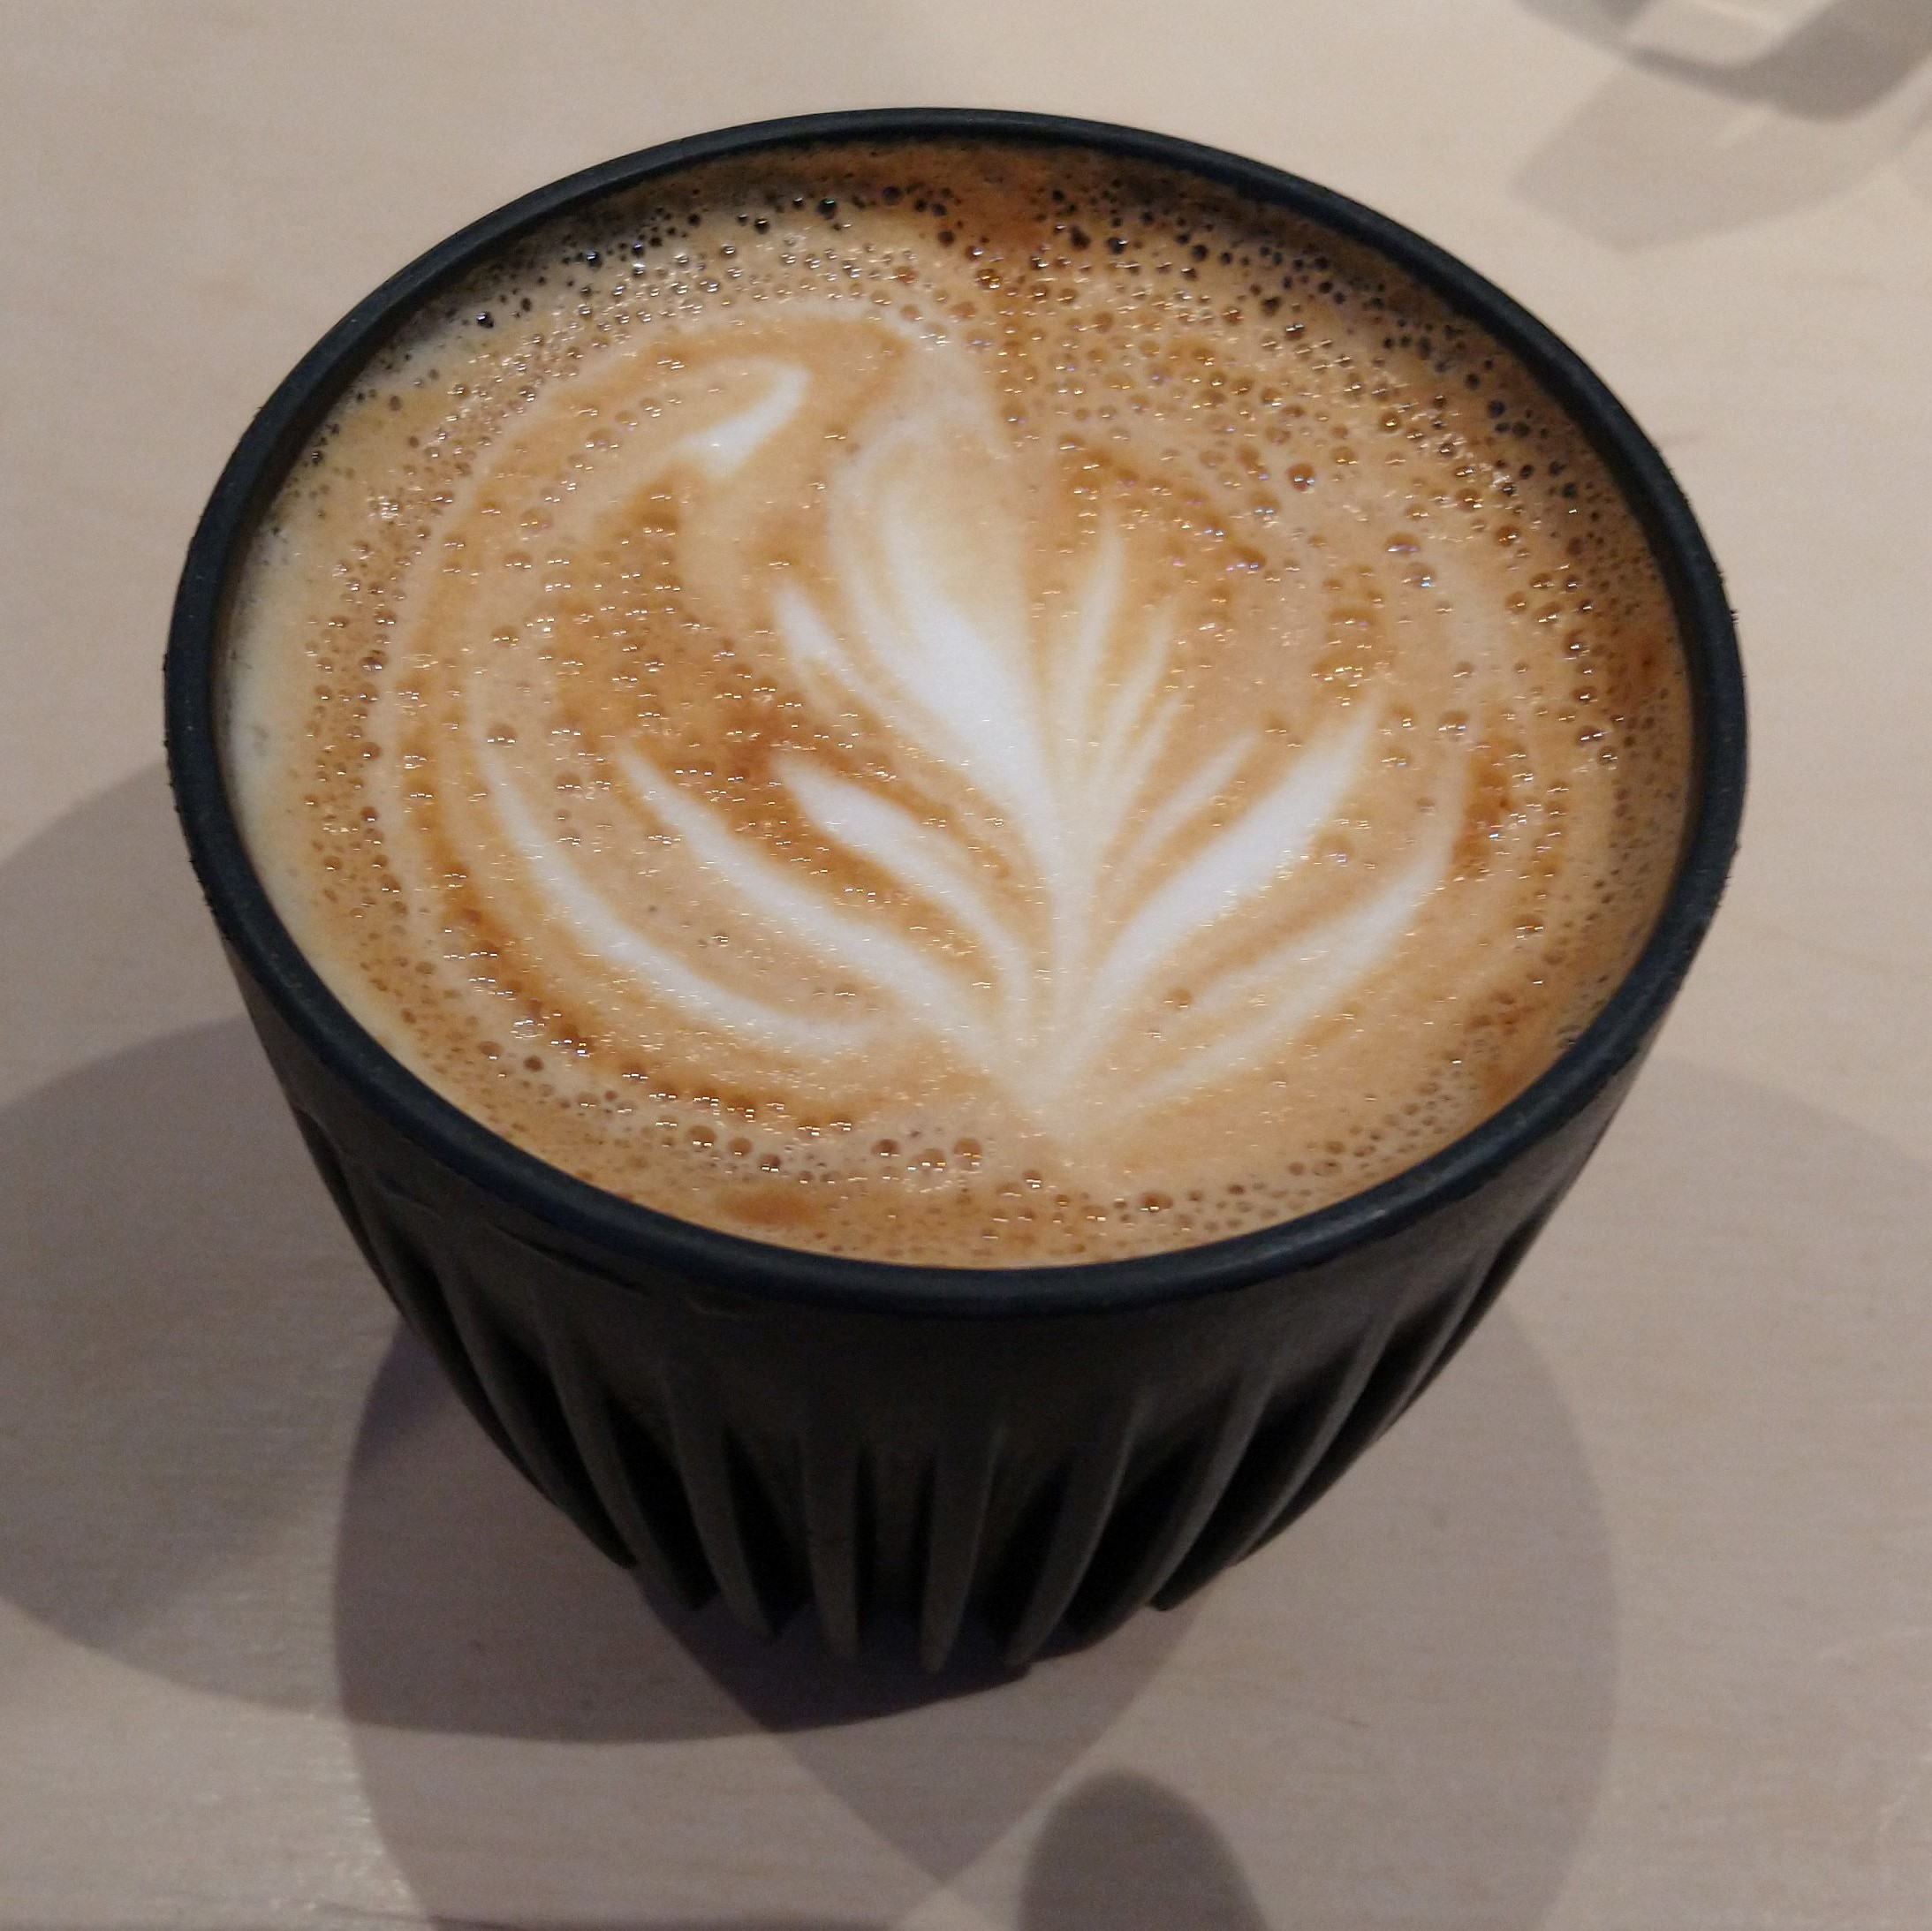 March 22nd, 2020, and the last flat white I was to have for several months, from Surrey Hills Coffee, served in my HuskeeCup.